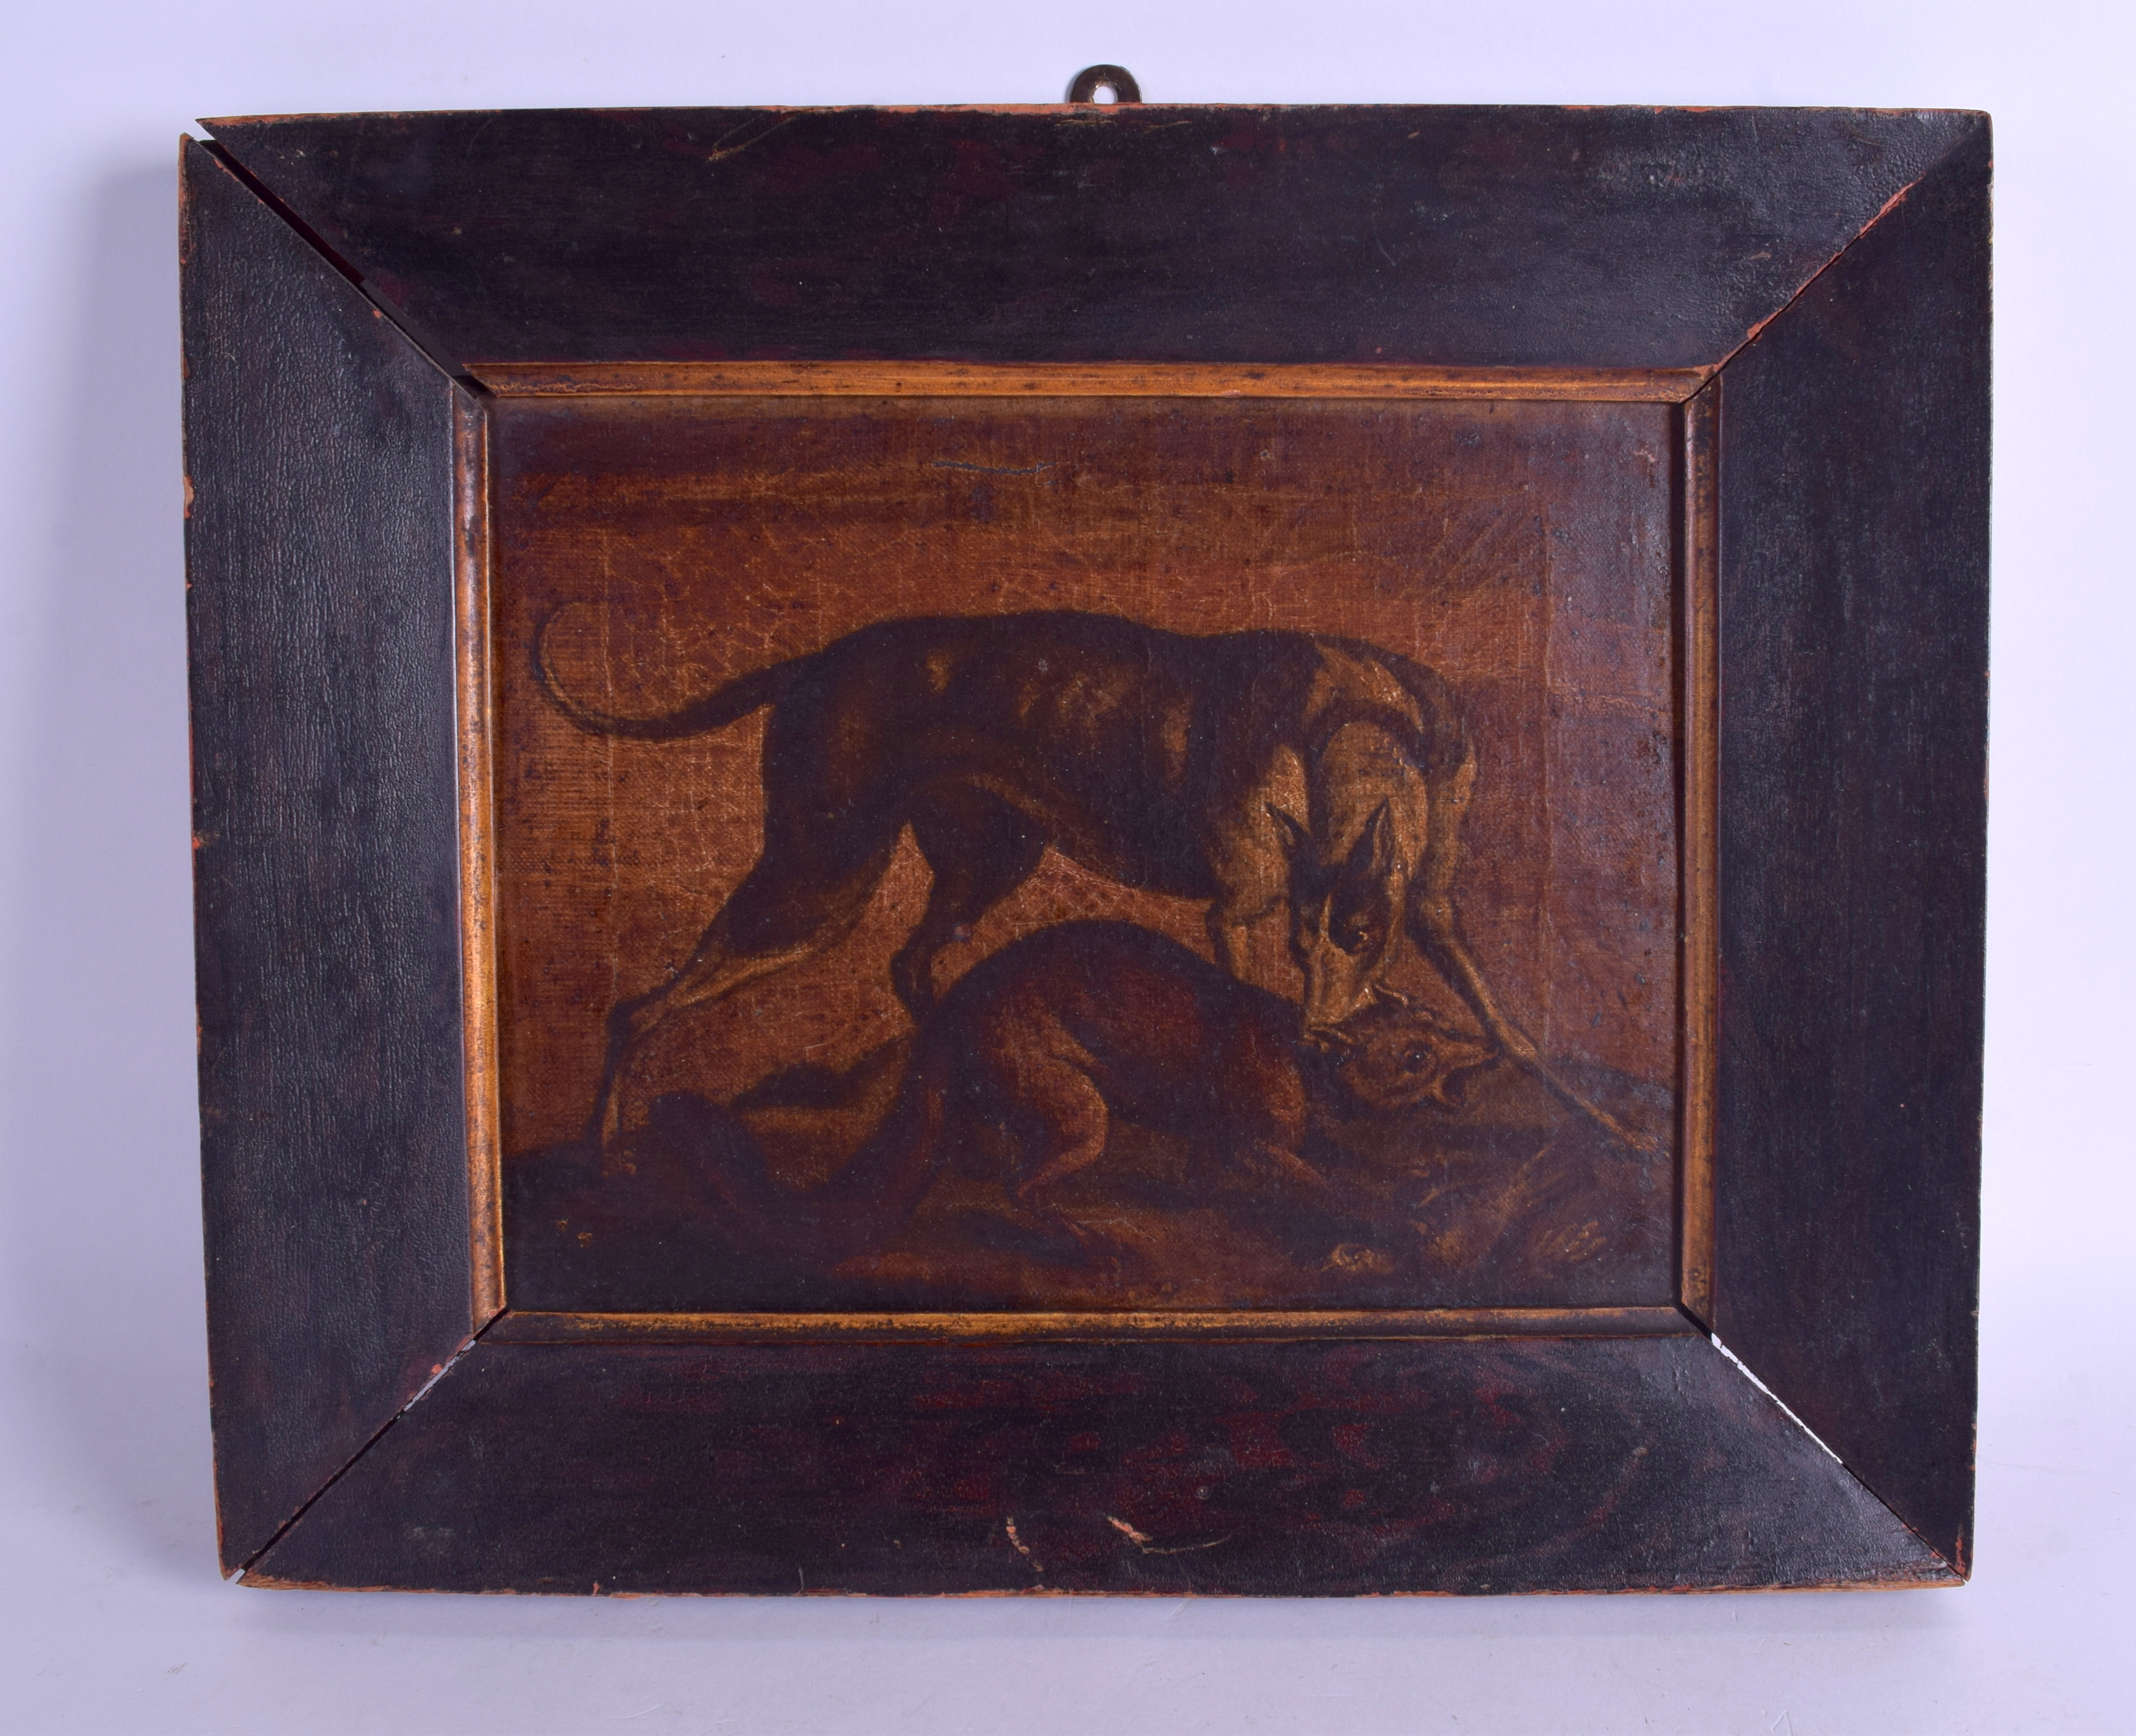 Lot 403 - A PAIR OF 18TH/19TH CENTURY CONTINENTAL OIL ON CANVAS depicting grappling animals. Image 26 cm x 22